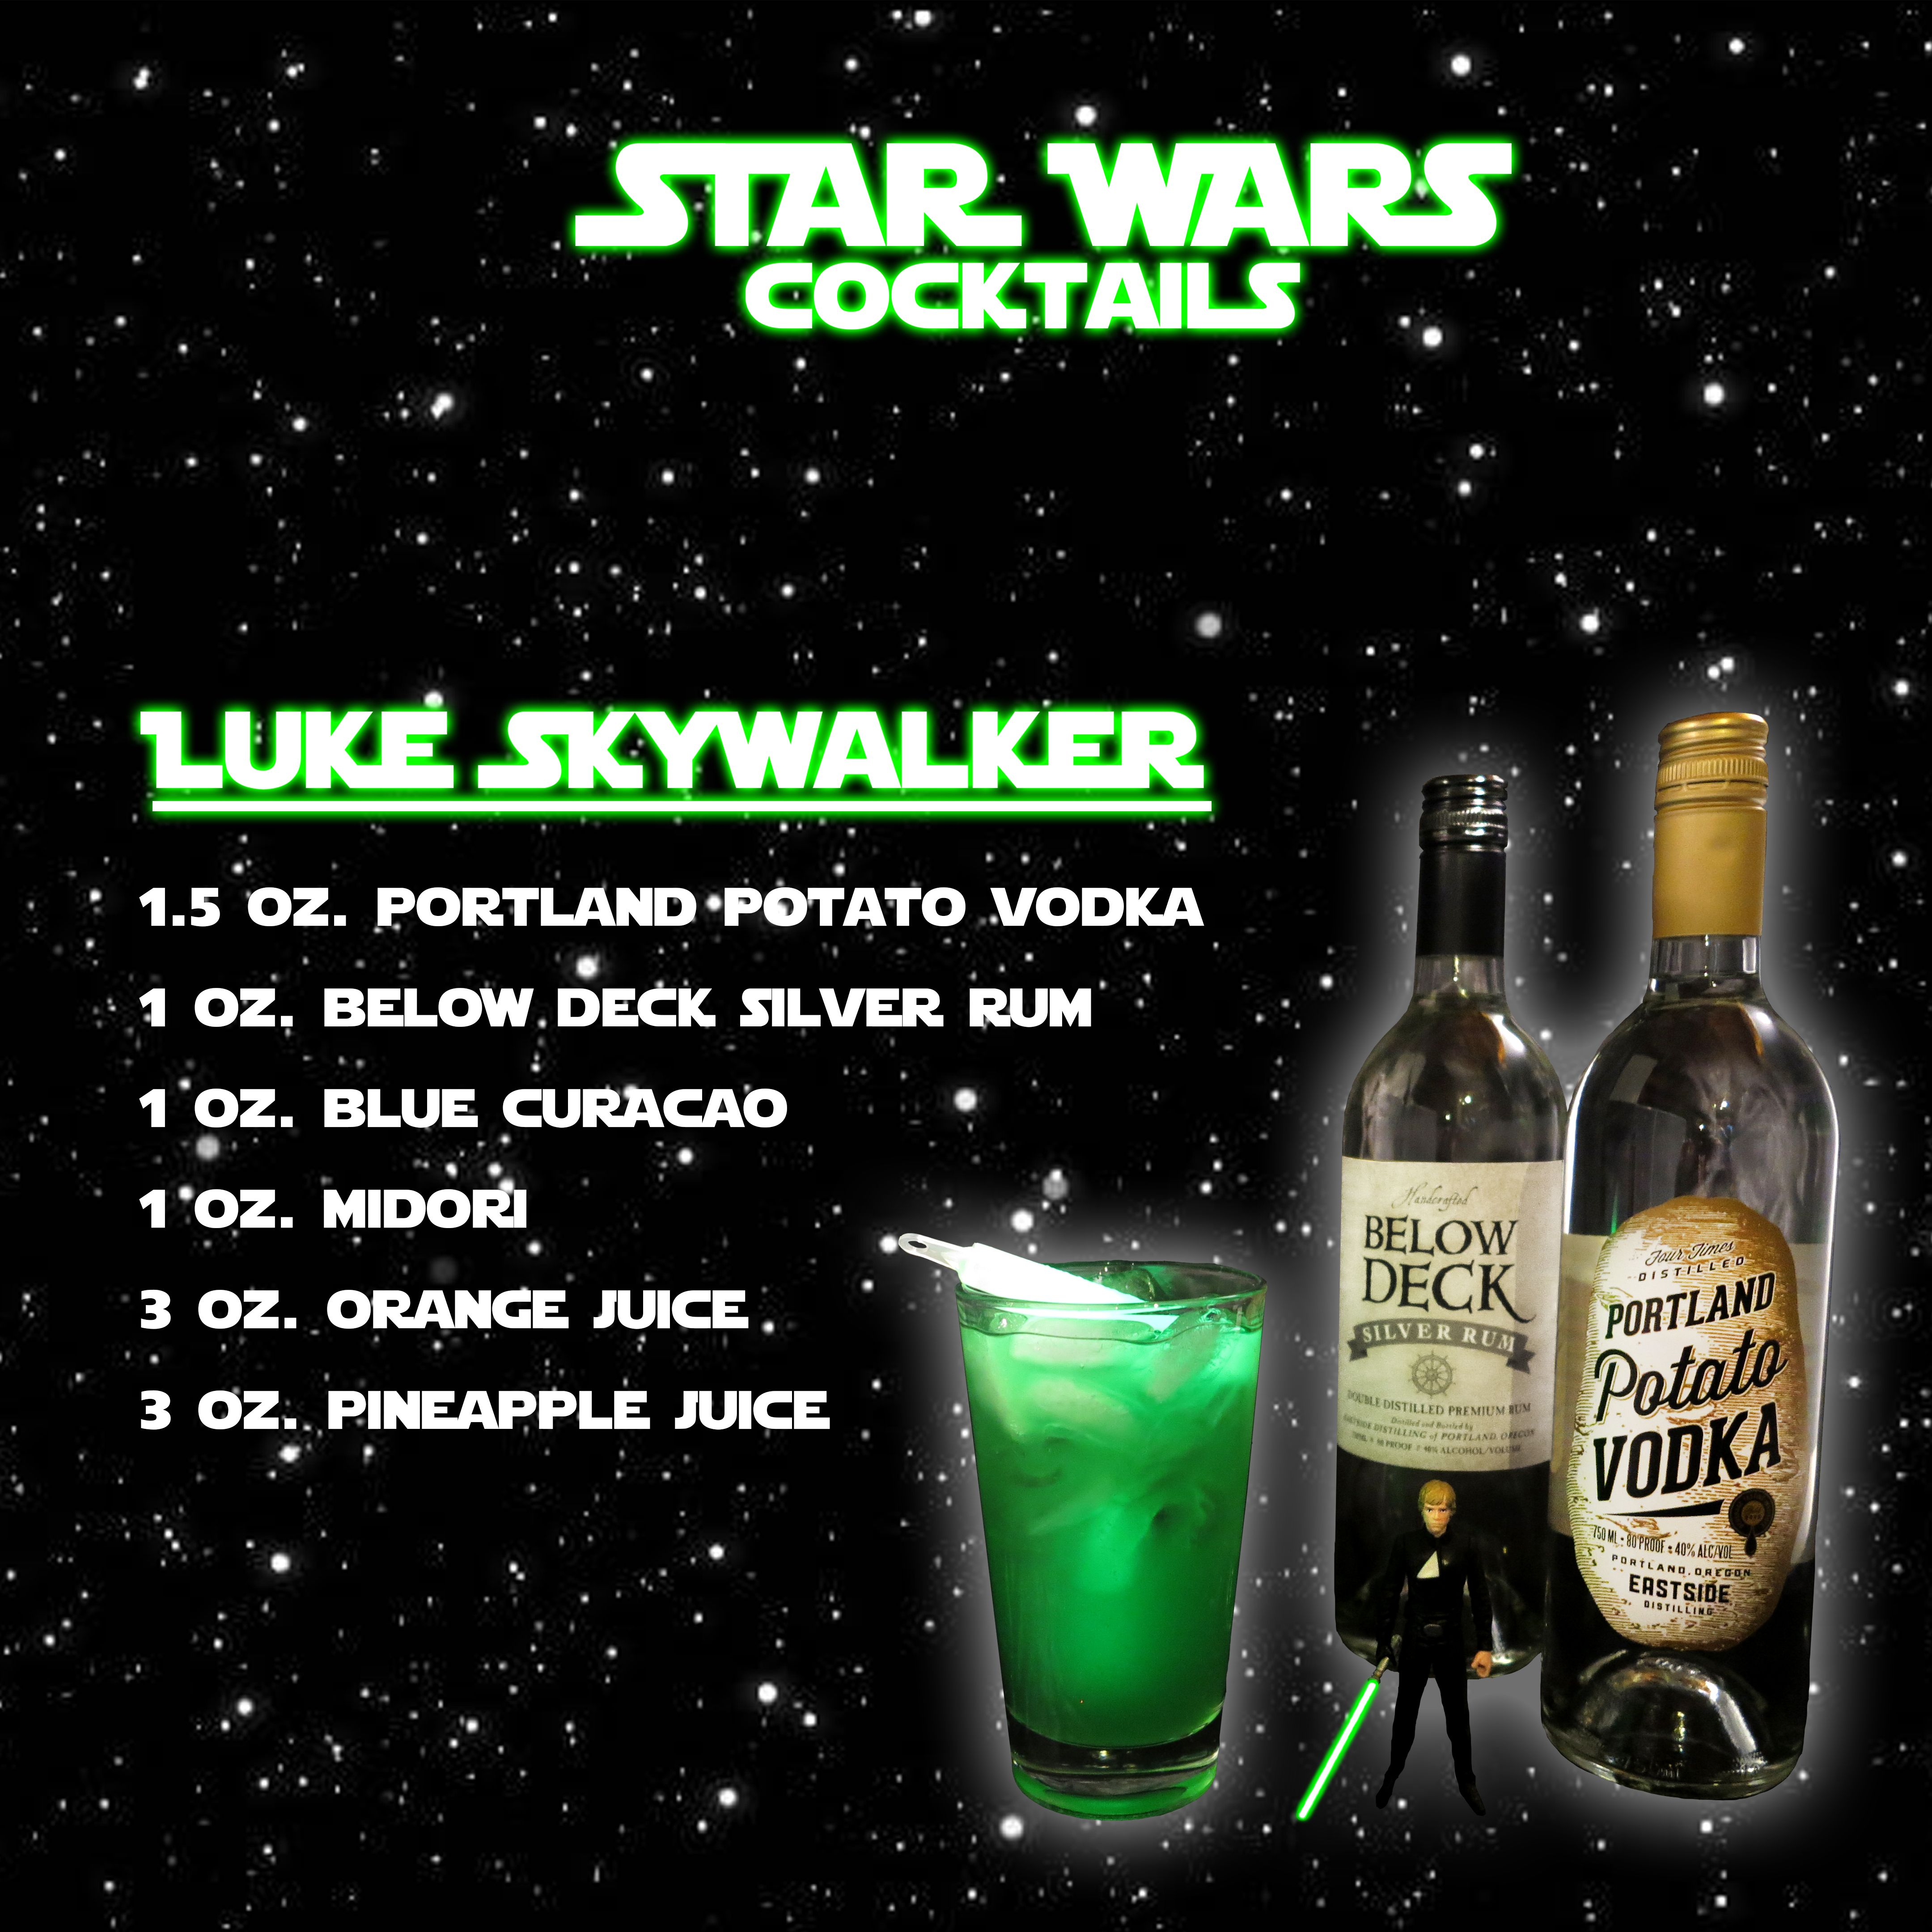 Star Wars: Luke Skywalker Cocktail